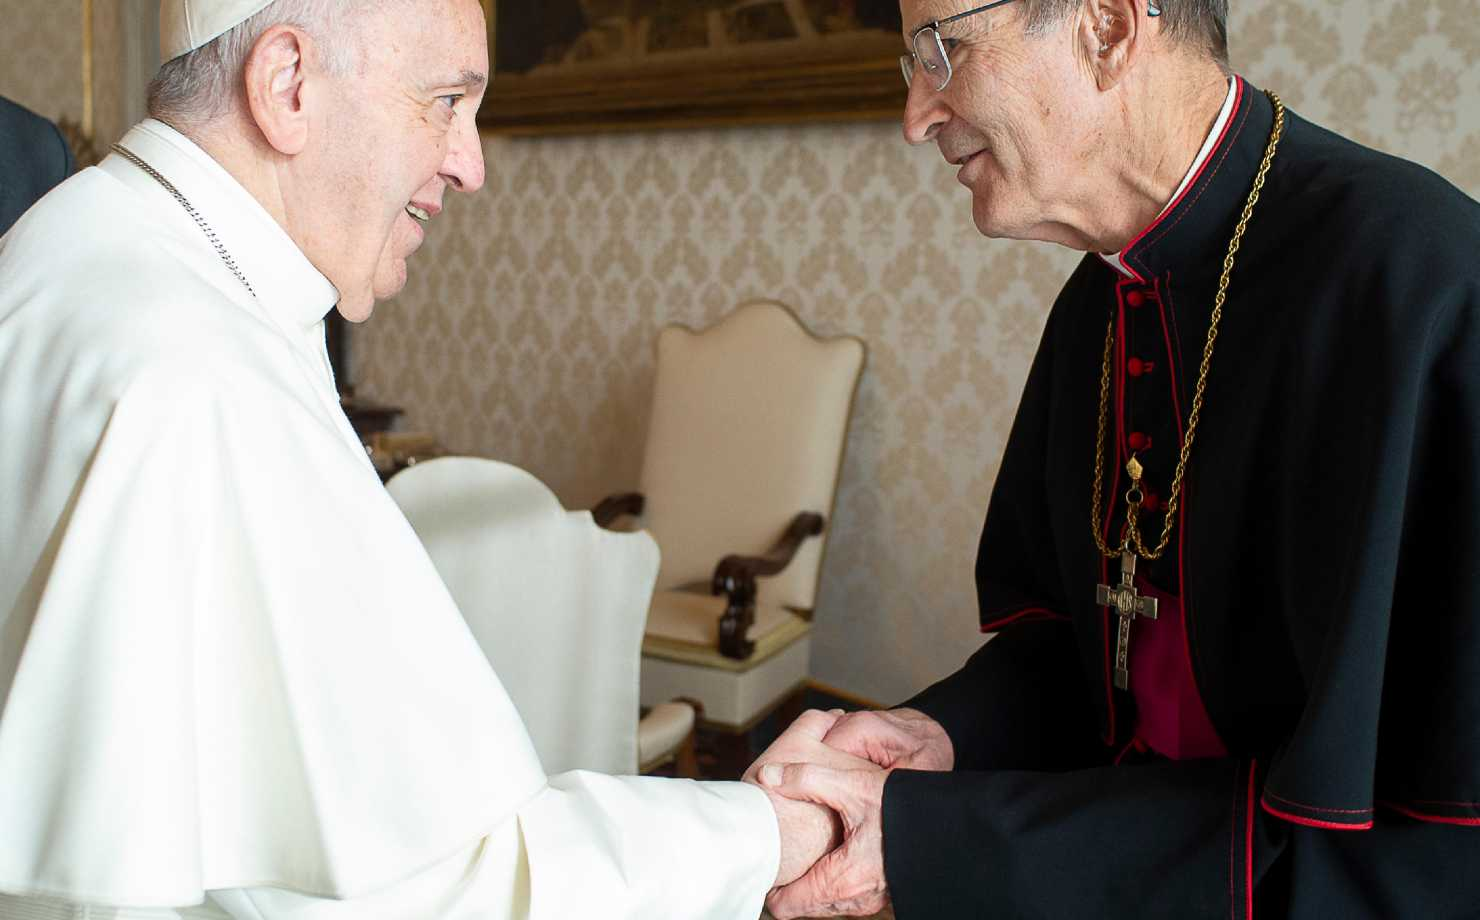 Bishop John LeVoir greets Pope Francis